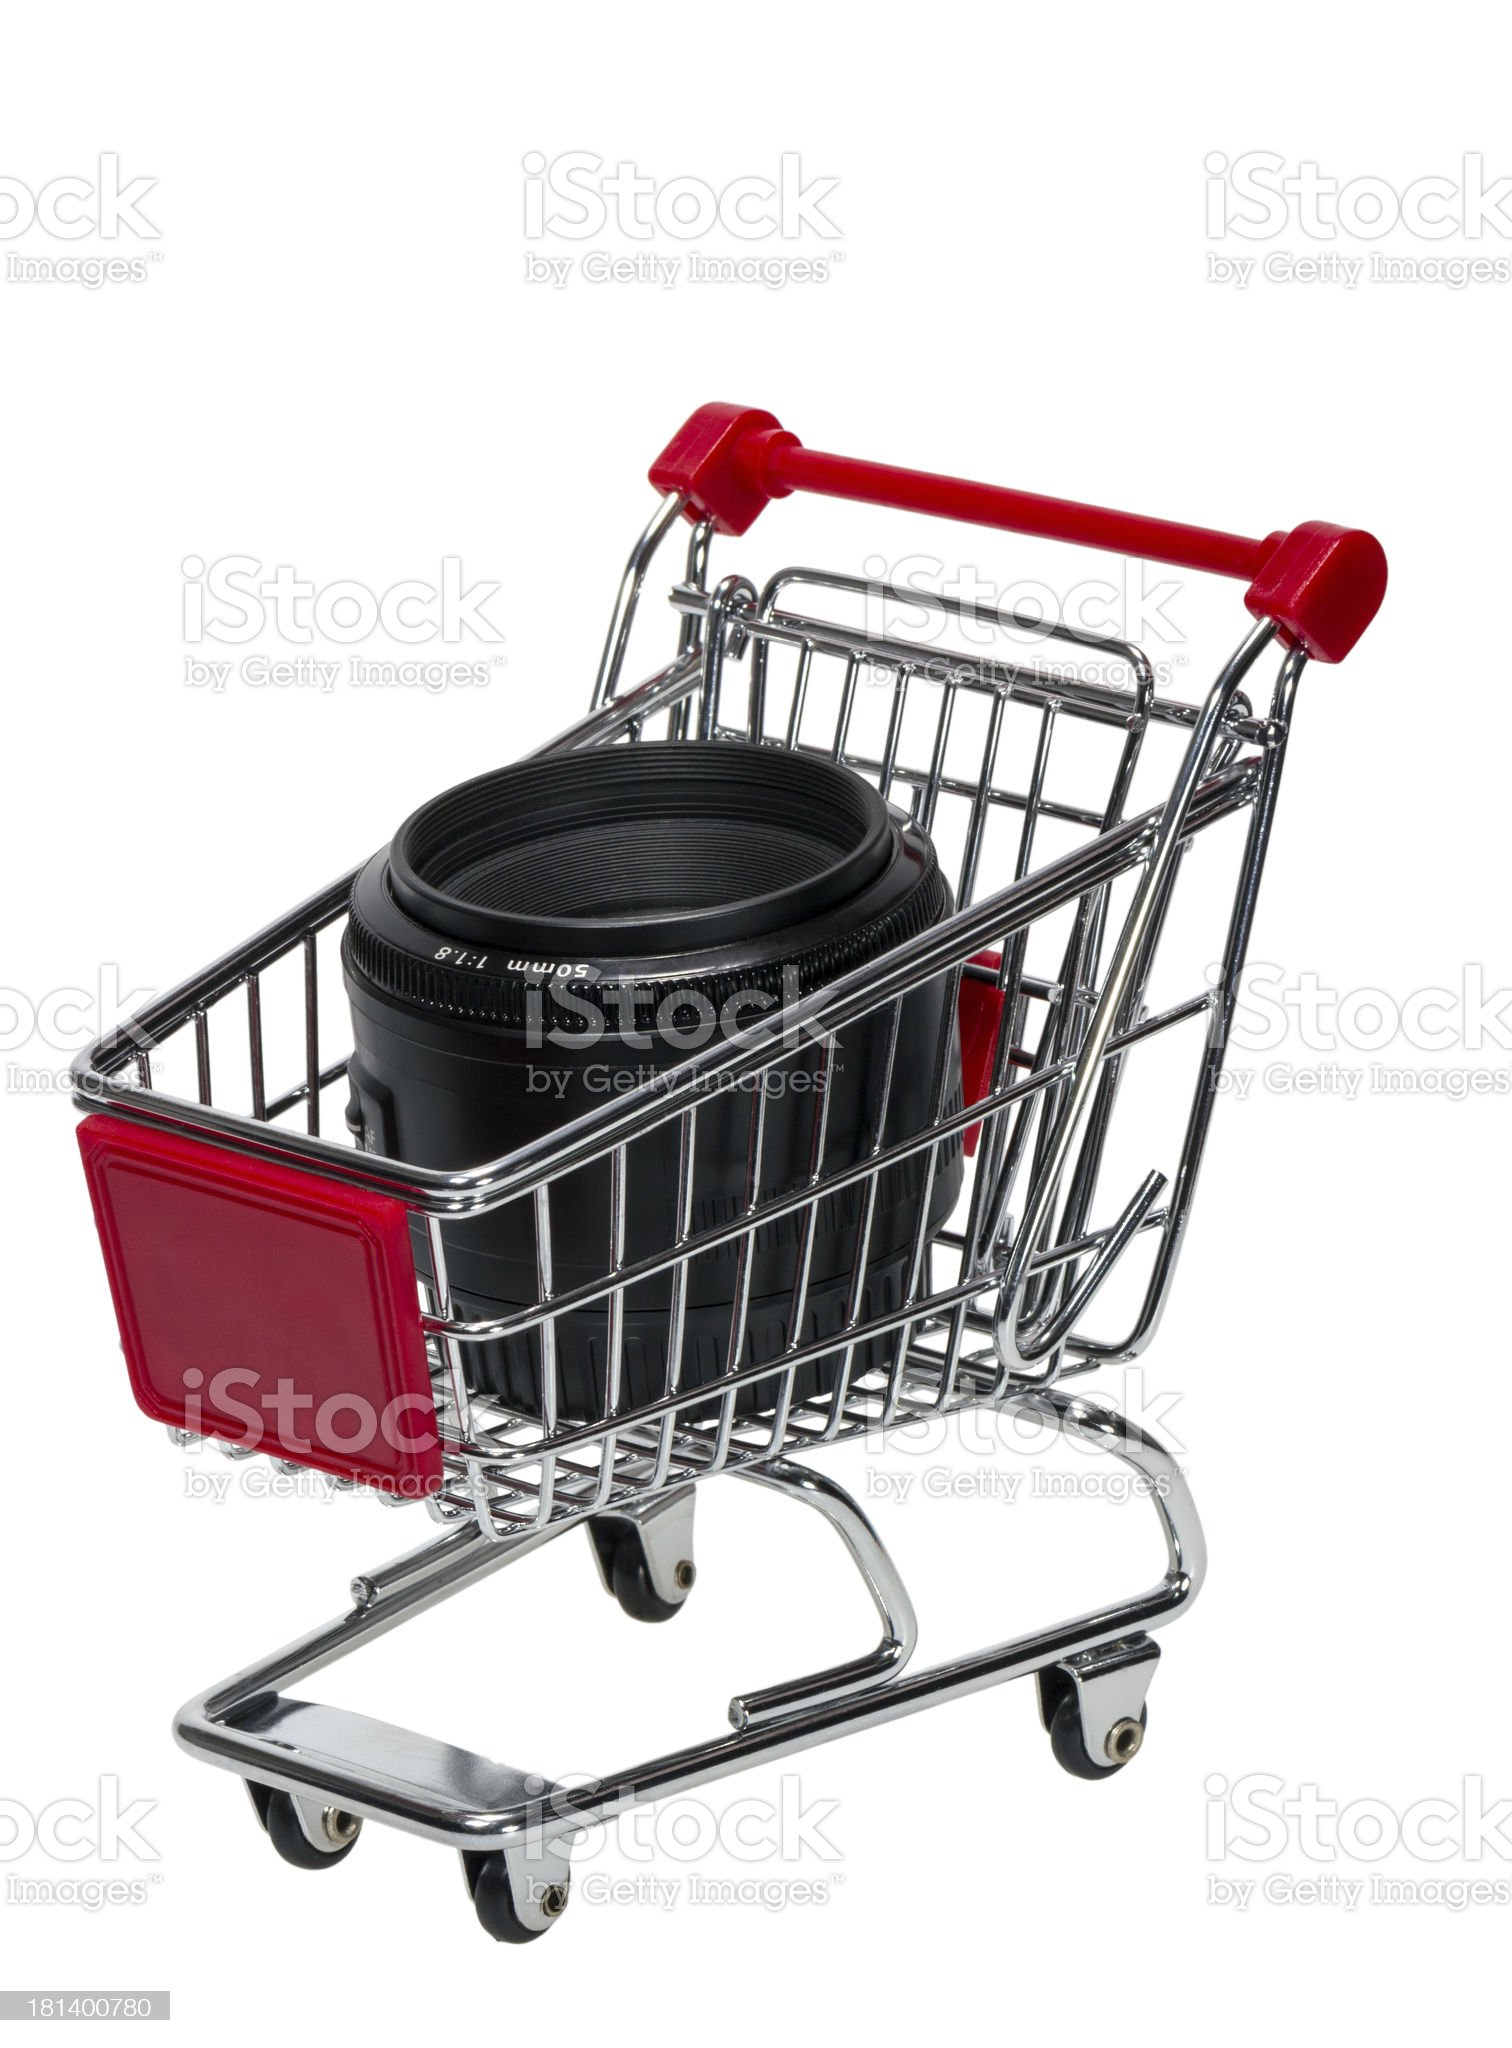 Shopping Cart with a camera lens royalty-free stock photo